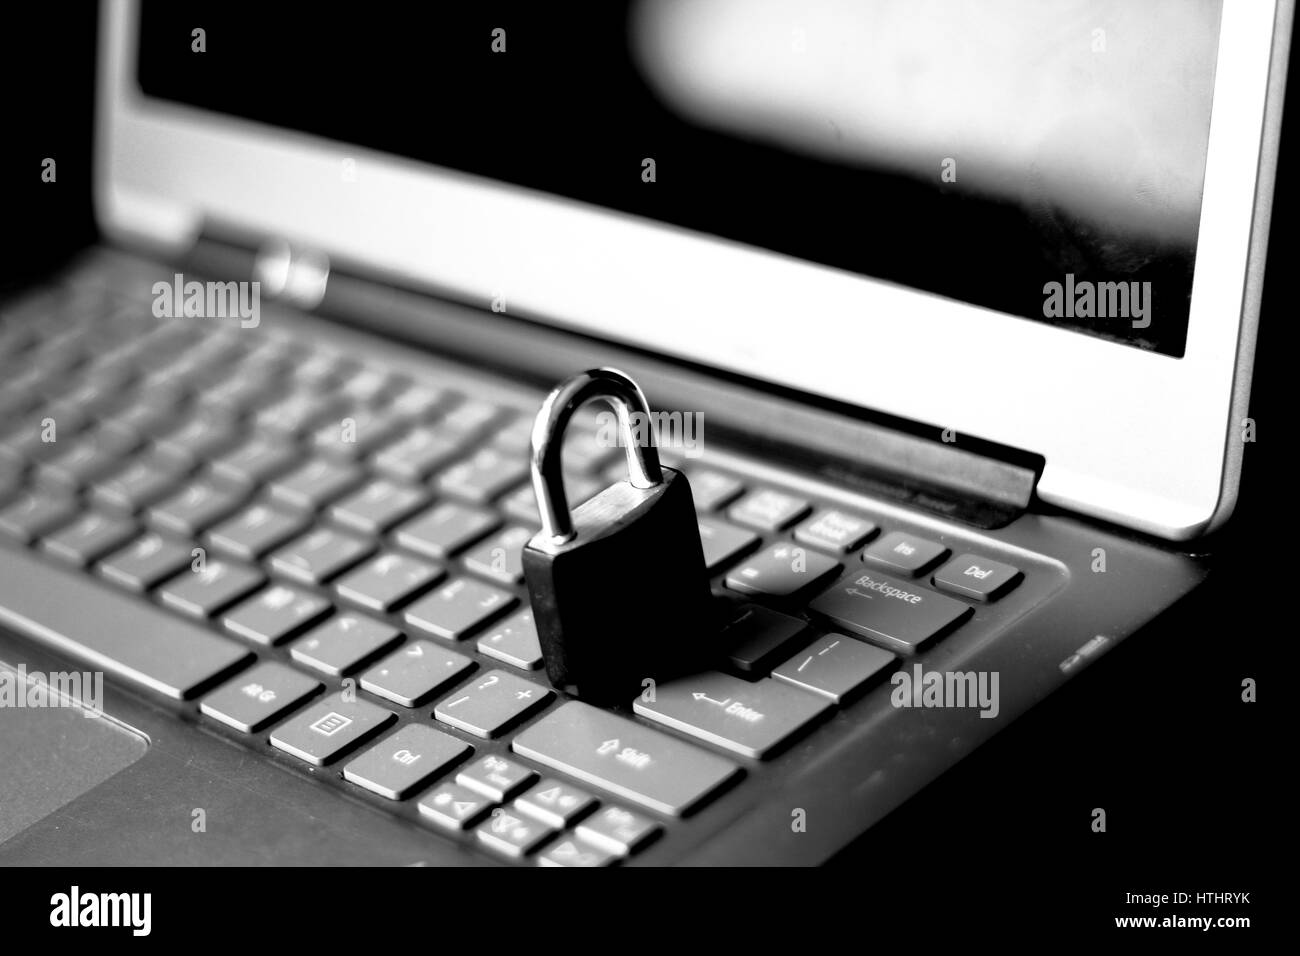 Padlock on a keyboard, internet and data security - Stock Image